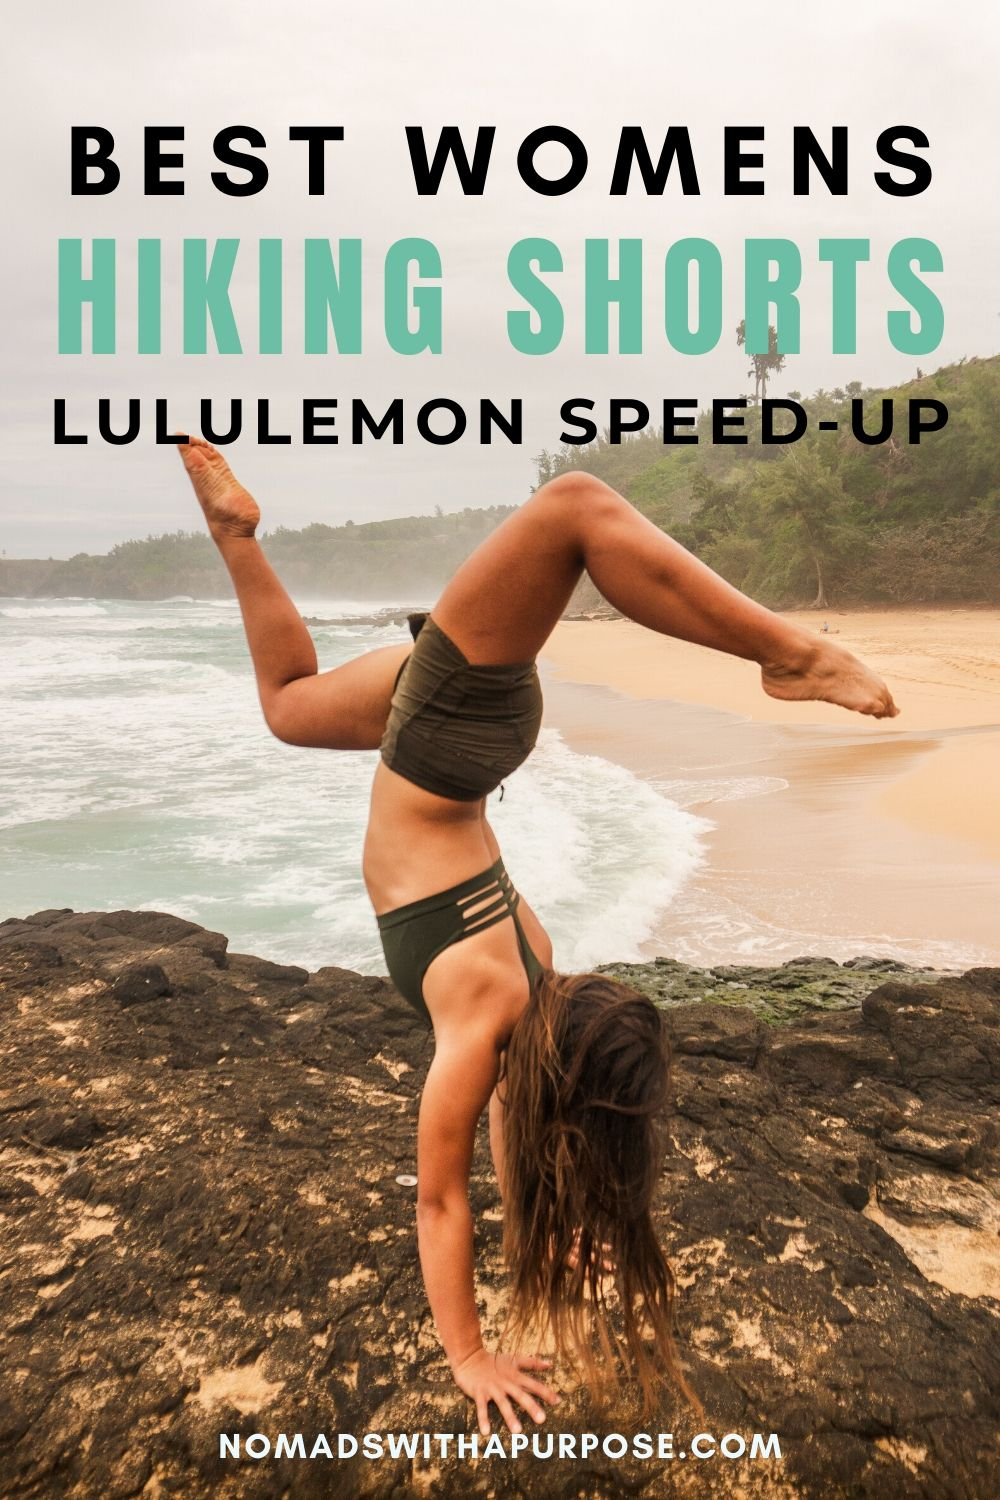 Lululemon speed up best hiking shorts social